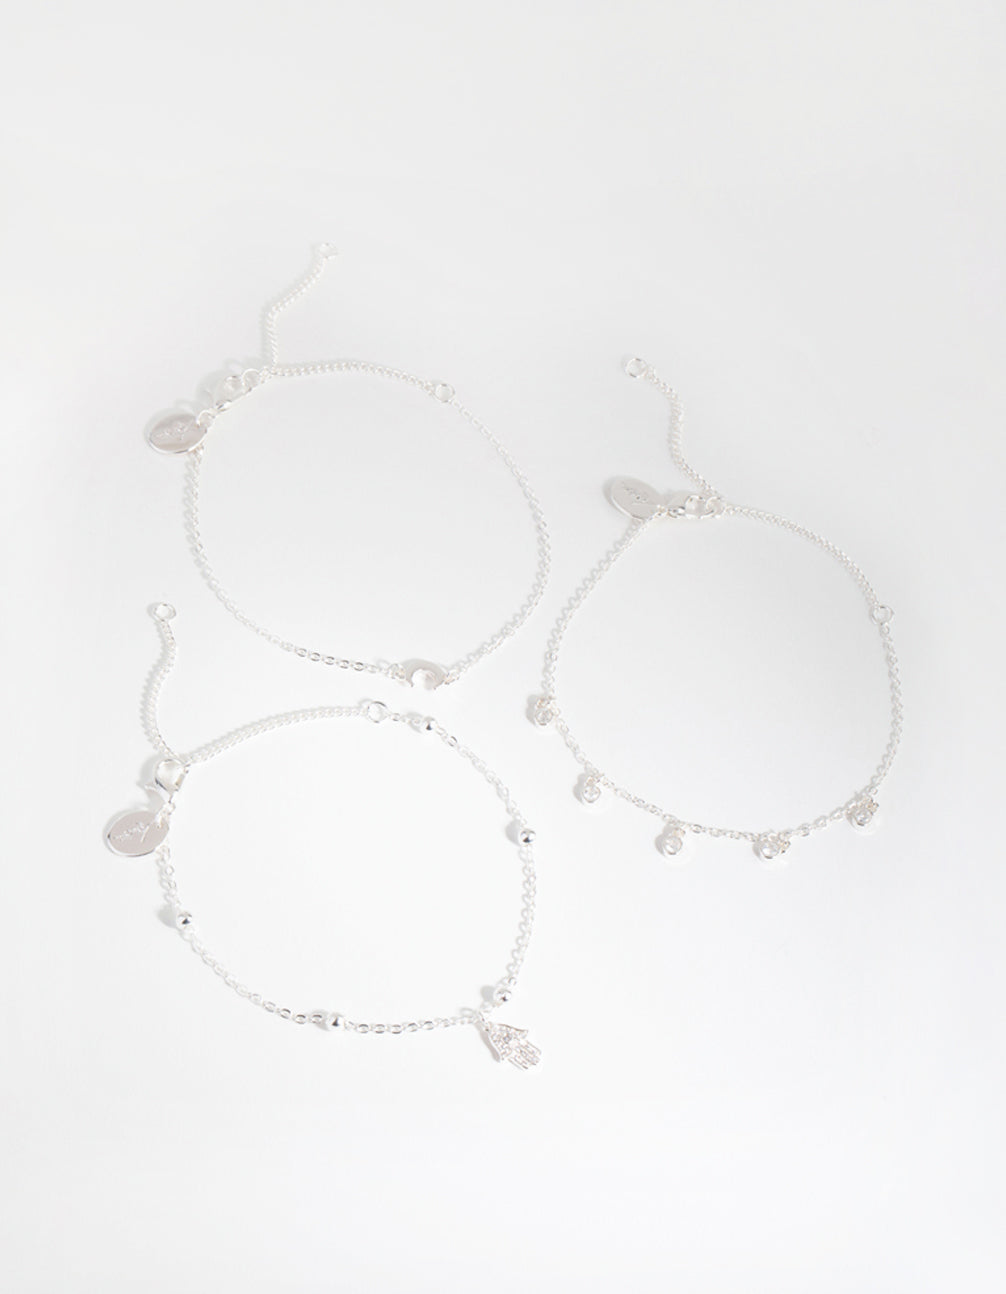 Silver Plated Cubic Zirconia Hamsa and Moon Bracelet Set